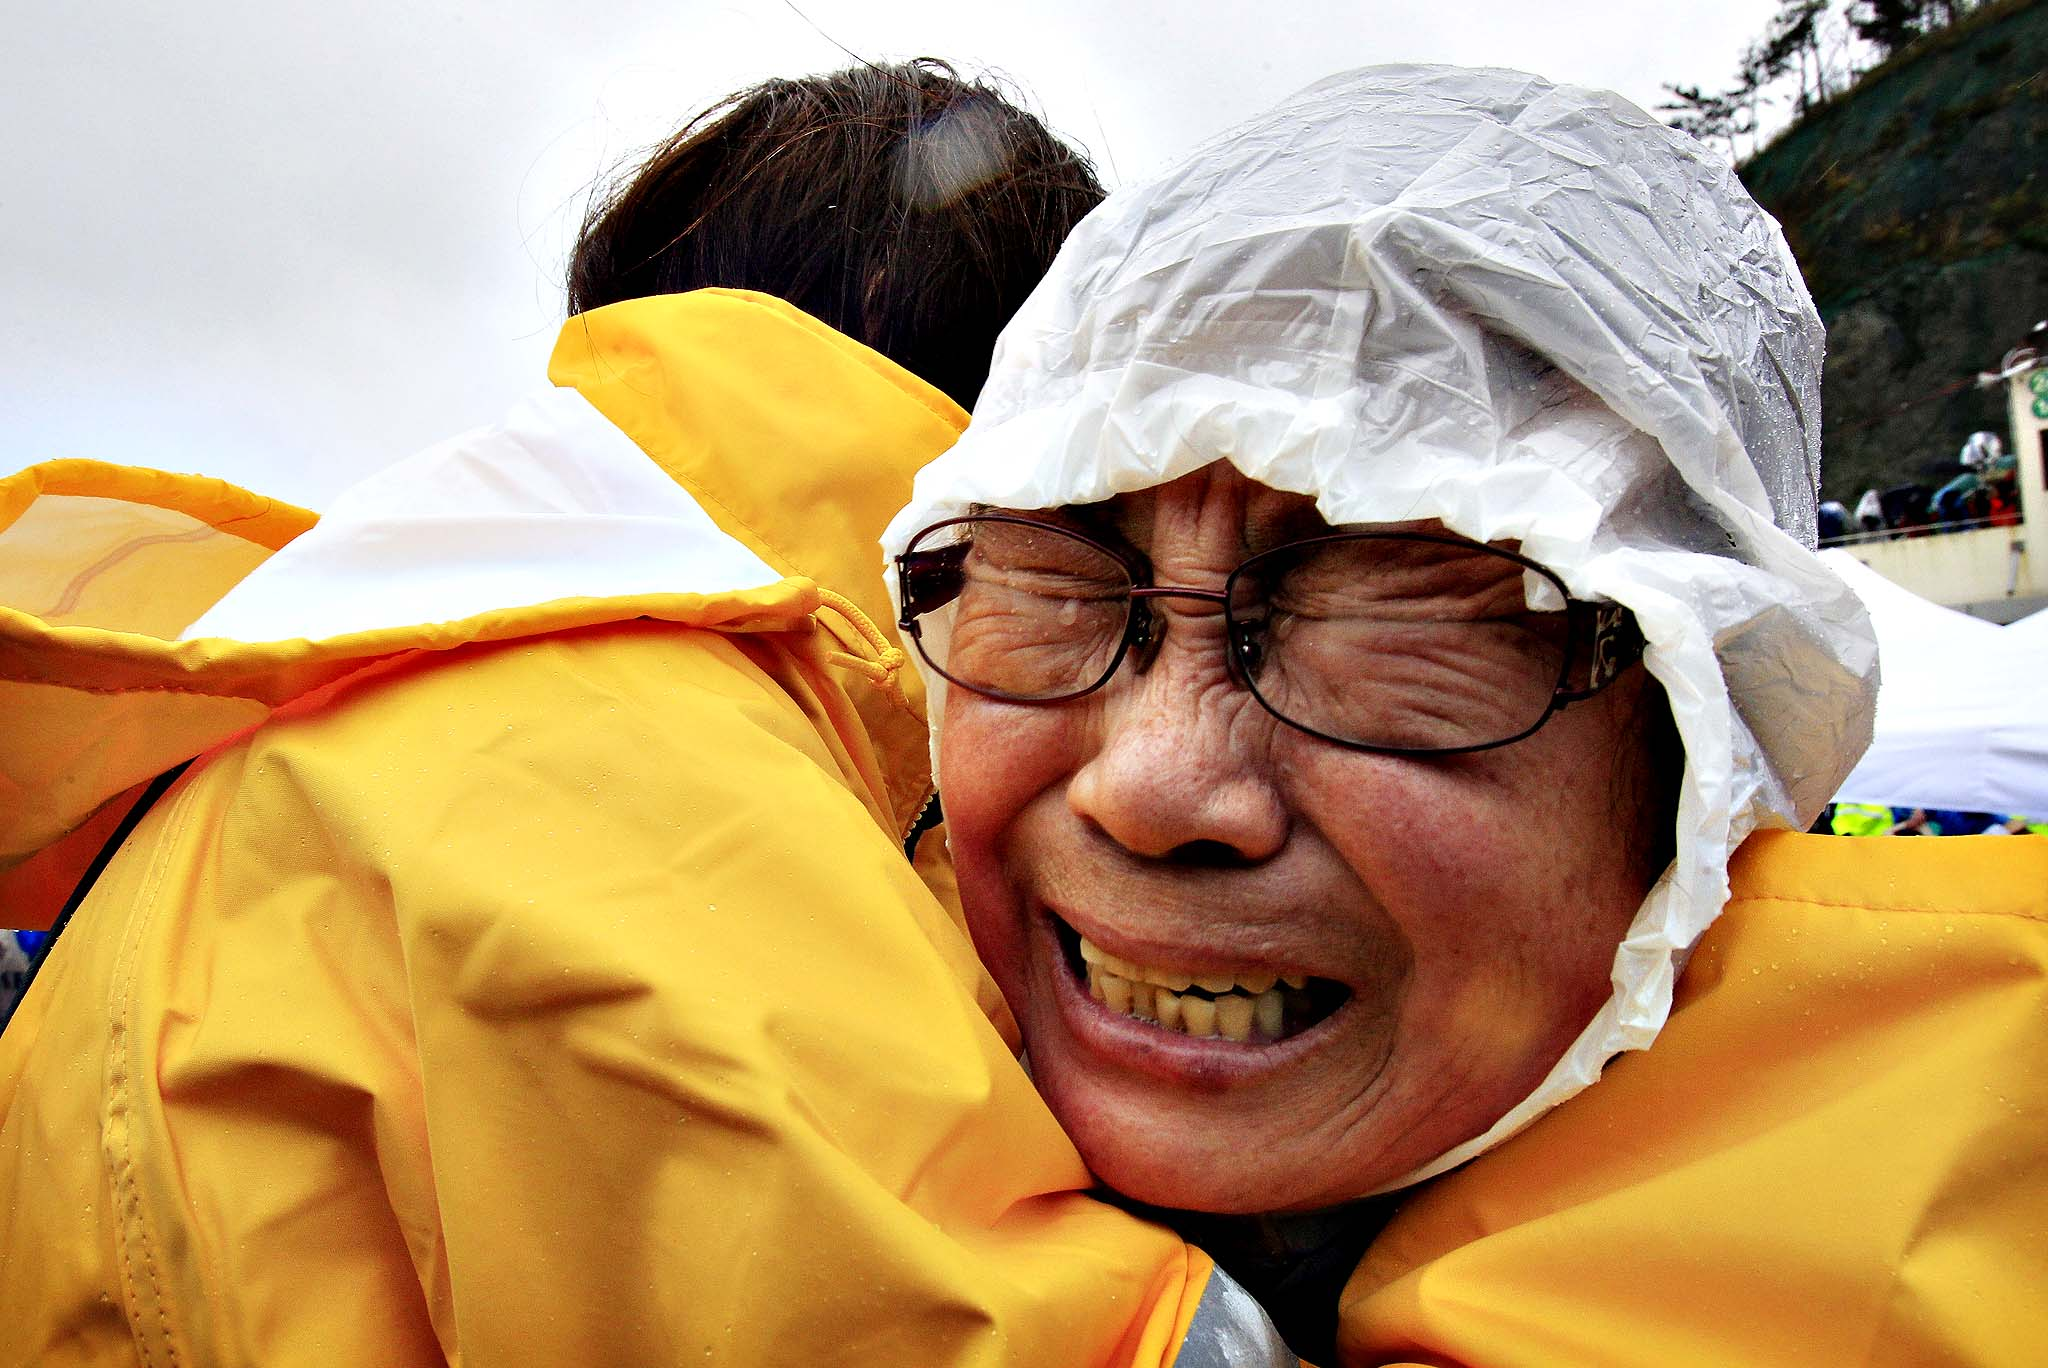 A relative of a passenger aboard a sunken ferry weeps at a port in Jindo, South Korea, Thursday, April 17, 2014.  Strong currents, rain and bad visibility hampered an increasingly anxious search Thursday for more than 280 passengers still missing a day after their ferry flipped onto its side and sank in cold waters off the southern coast of South Korea.